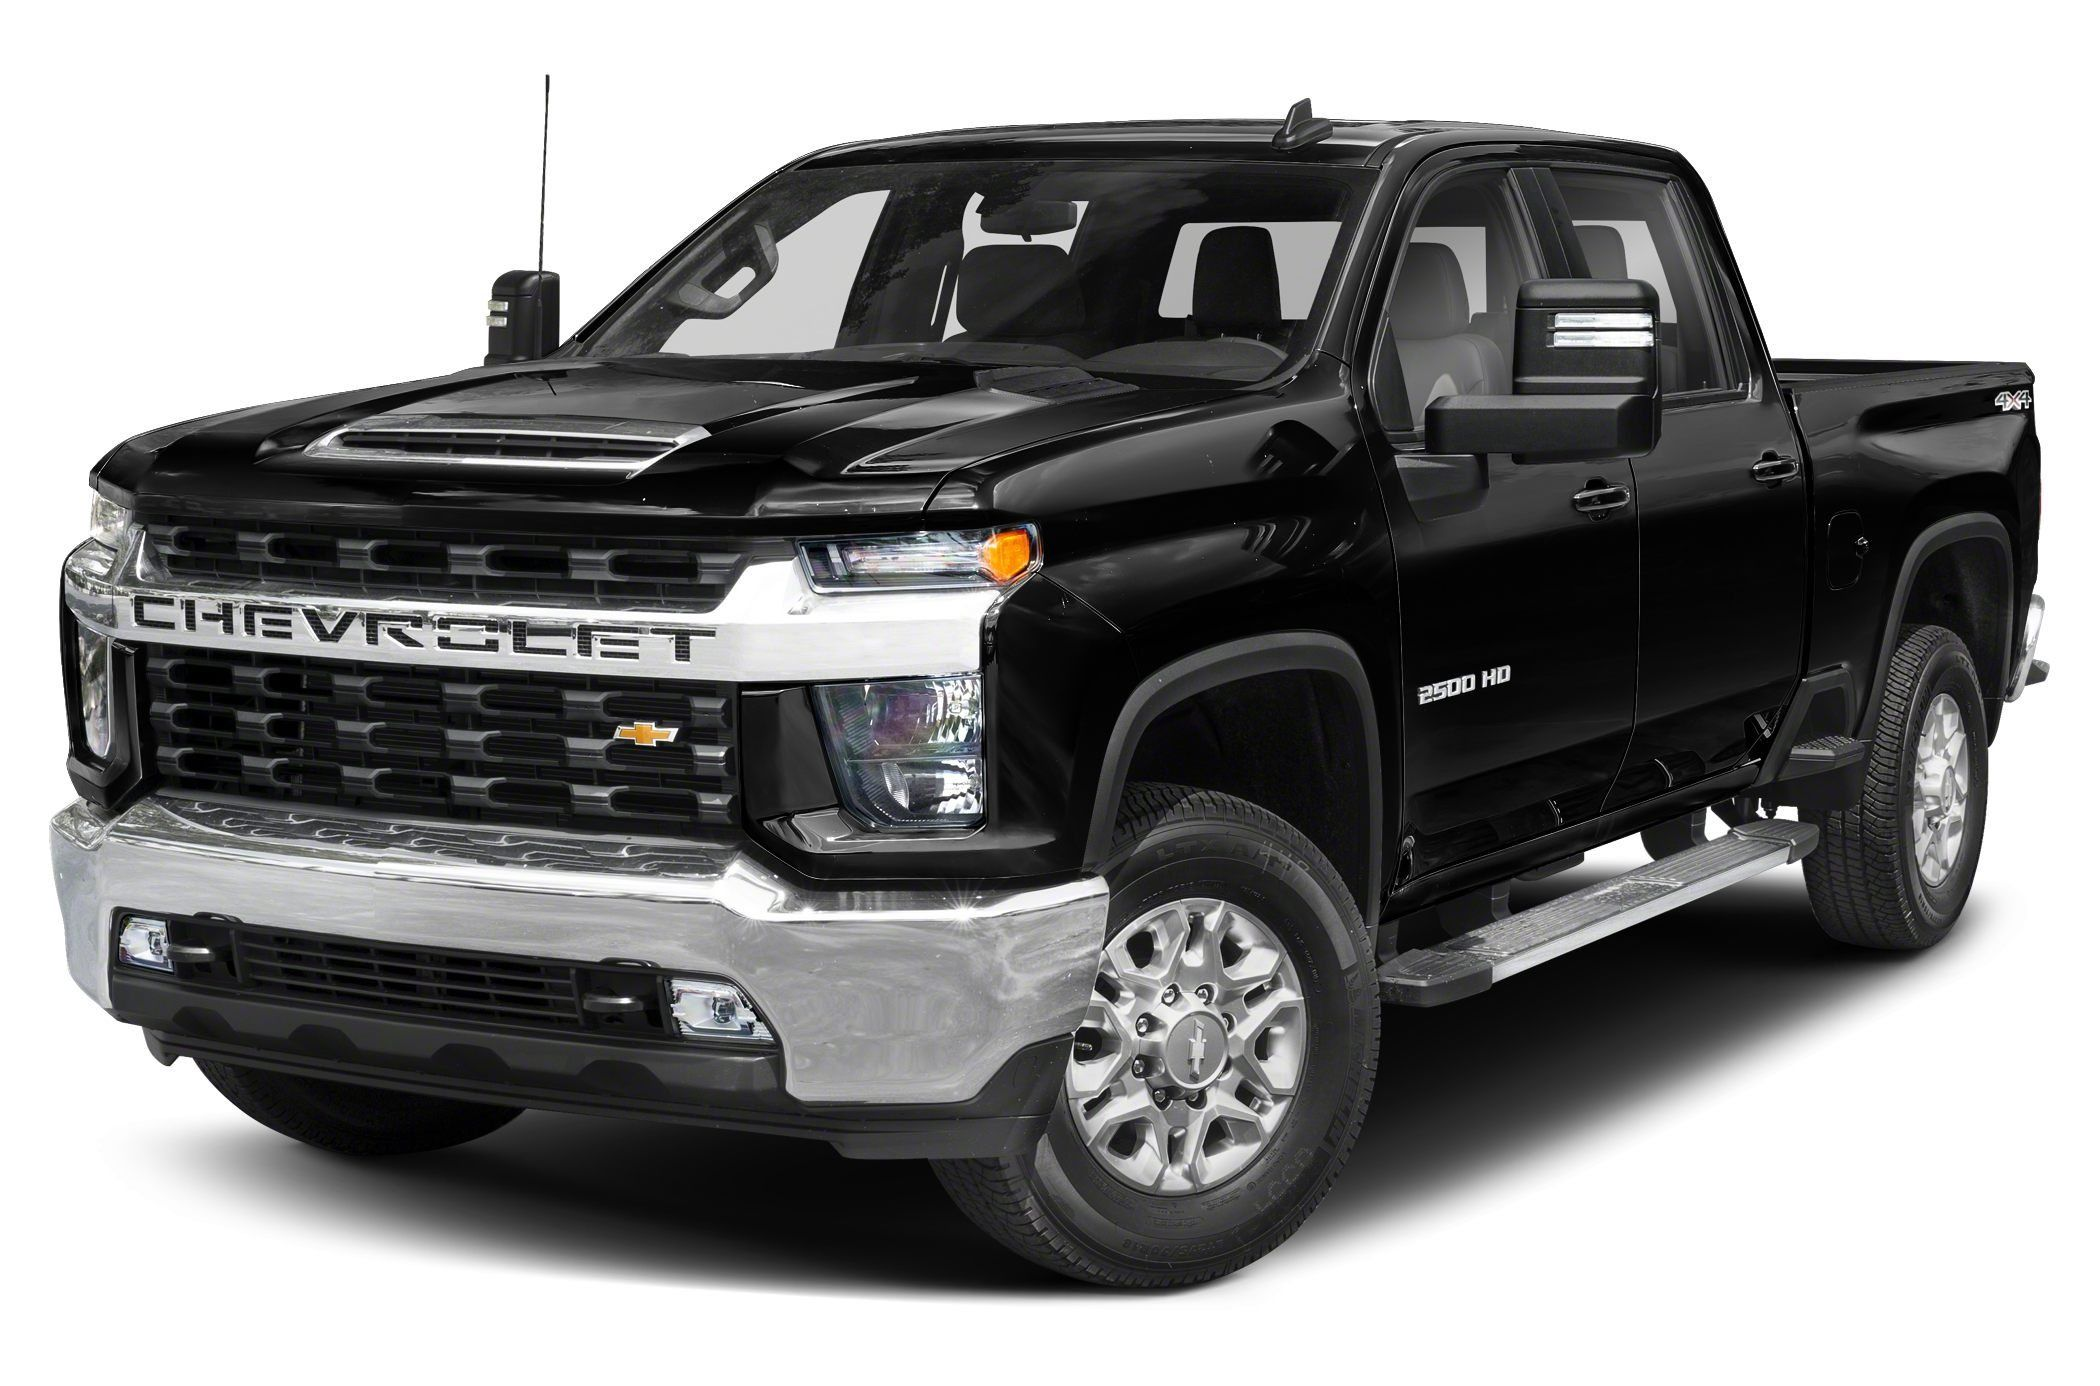 2020 Chevy 2500hd Duramax Review In 2020 Chevrolet Silverado 2500hd Chevrolet Silverado Work Truck